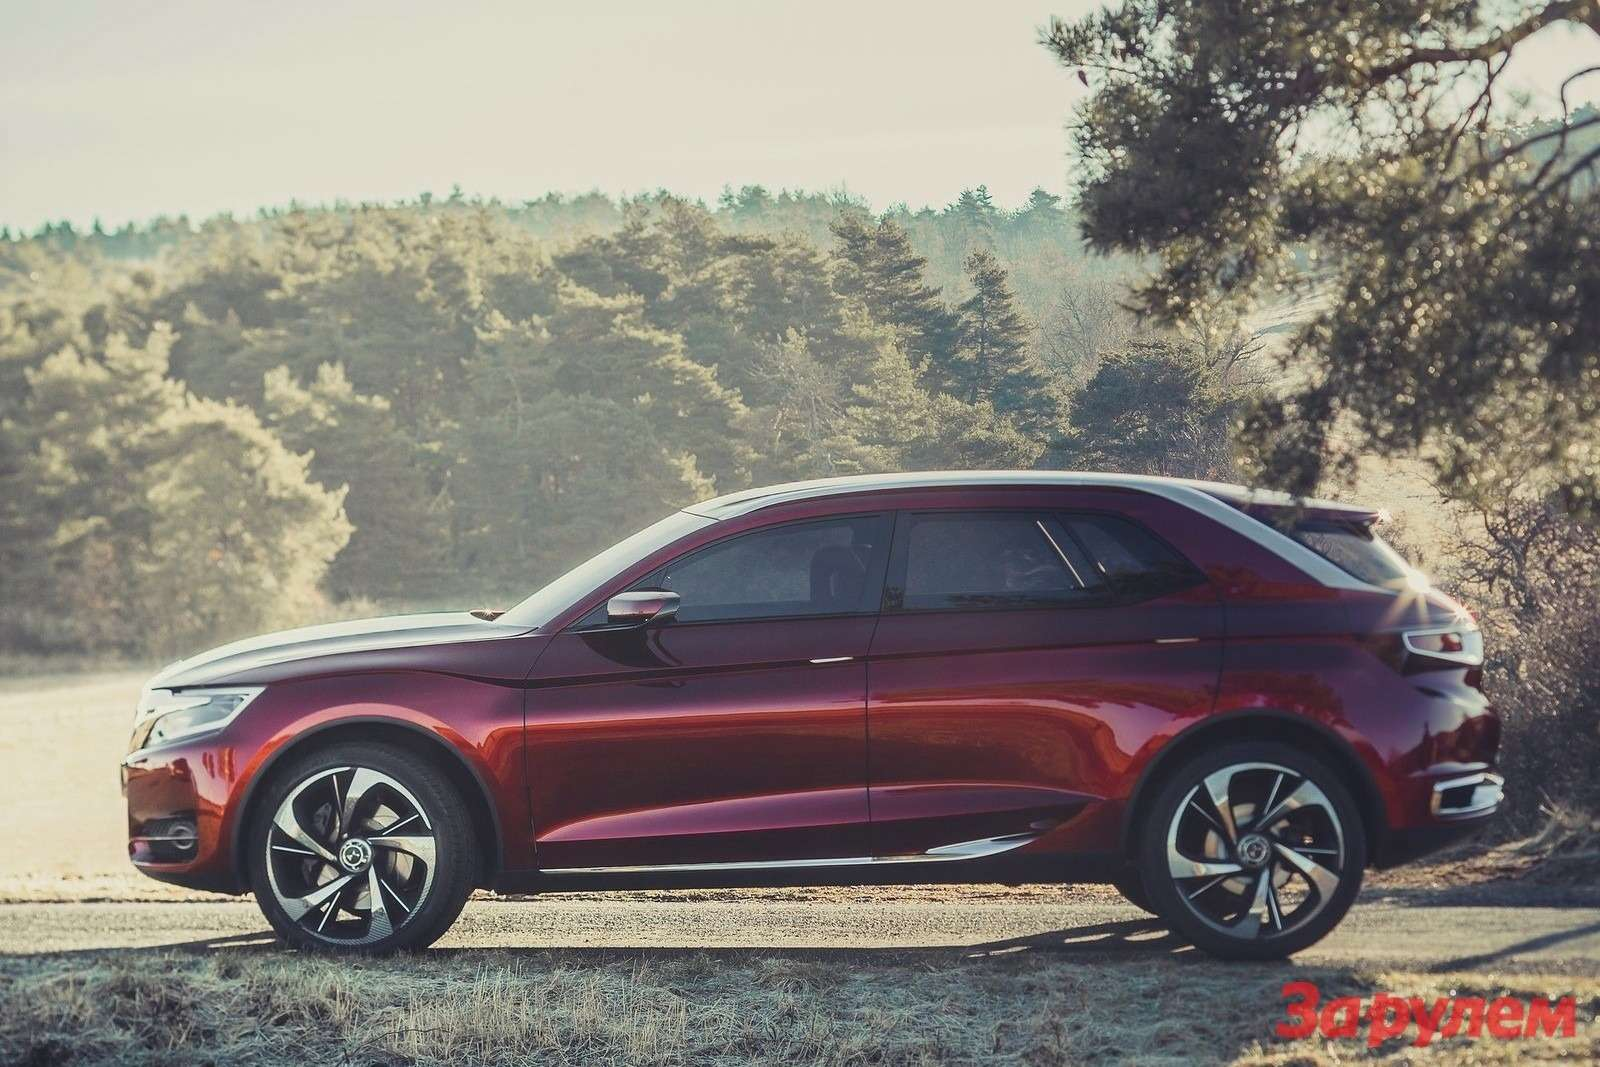 Citroen DS Wild Rubis Concept 2013 1600x1200 wallpaper 06